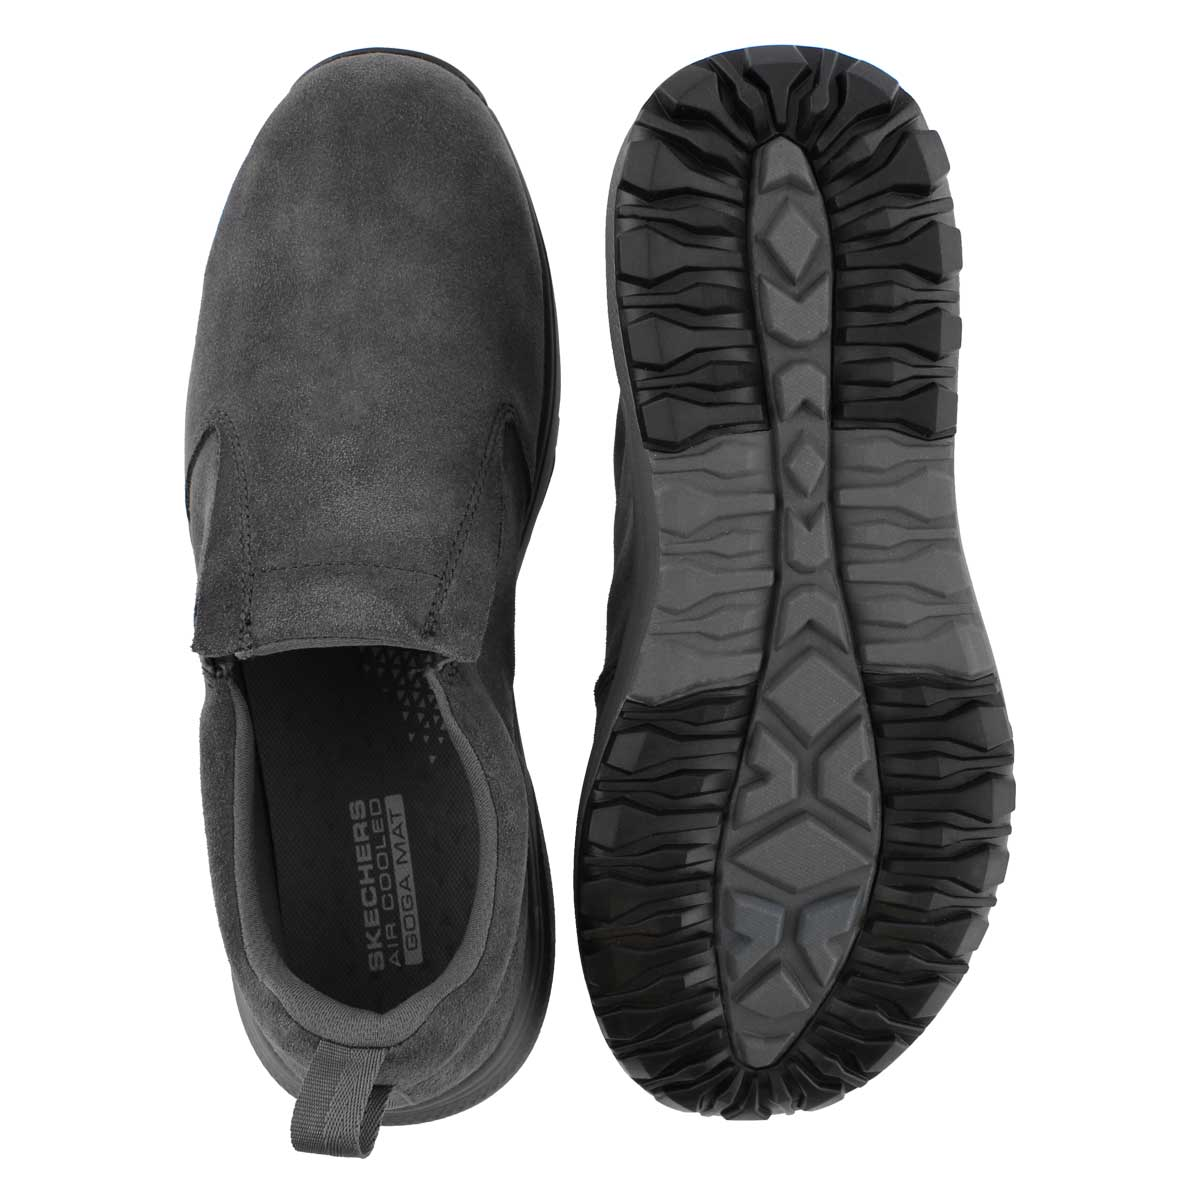 Mns On-The-Go Outdoors Ultra char slipon